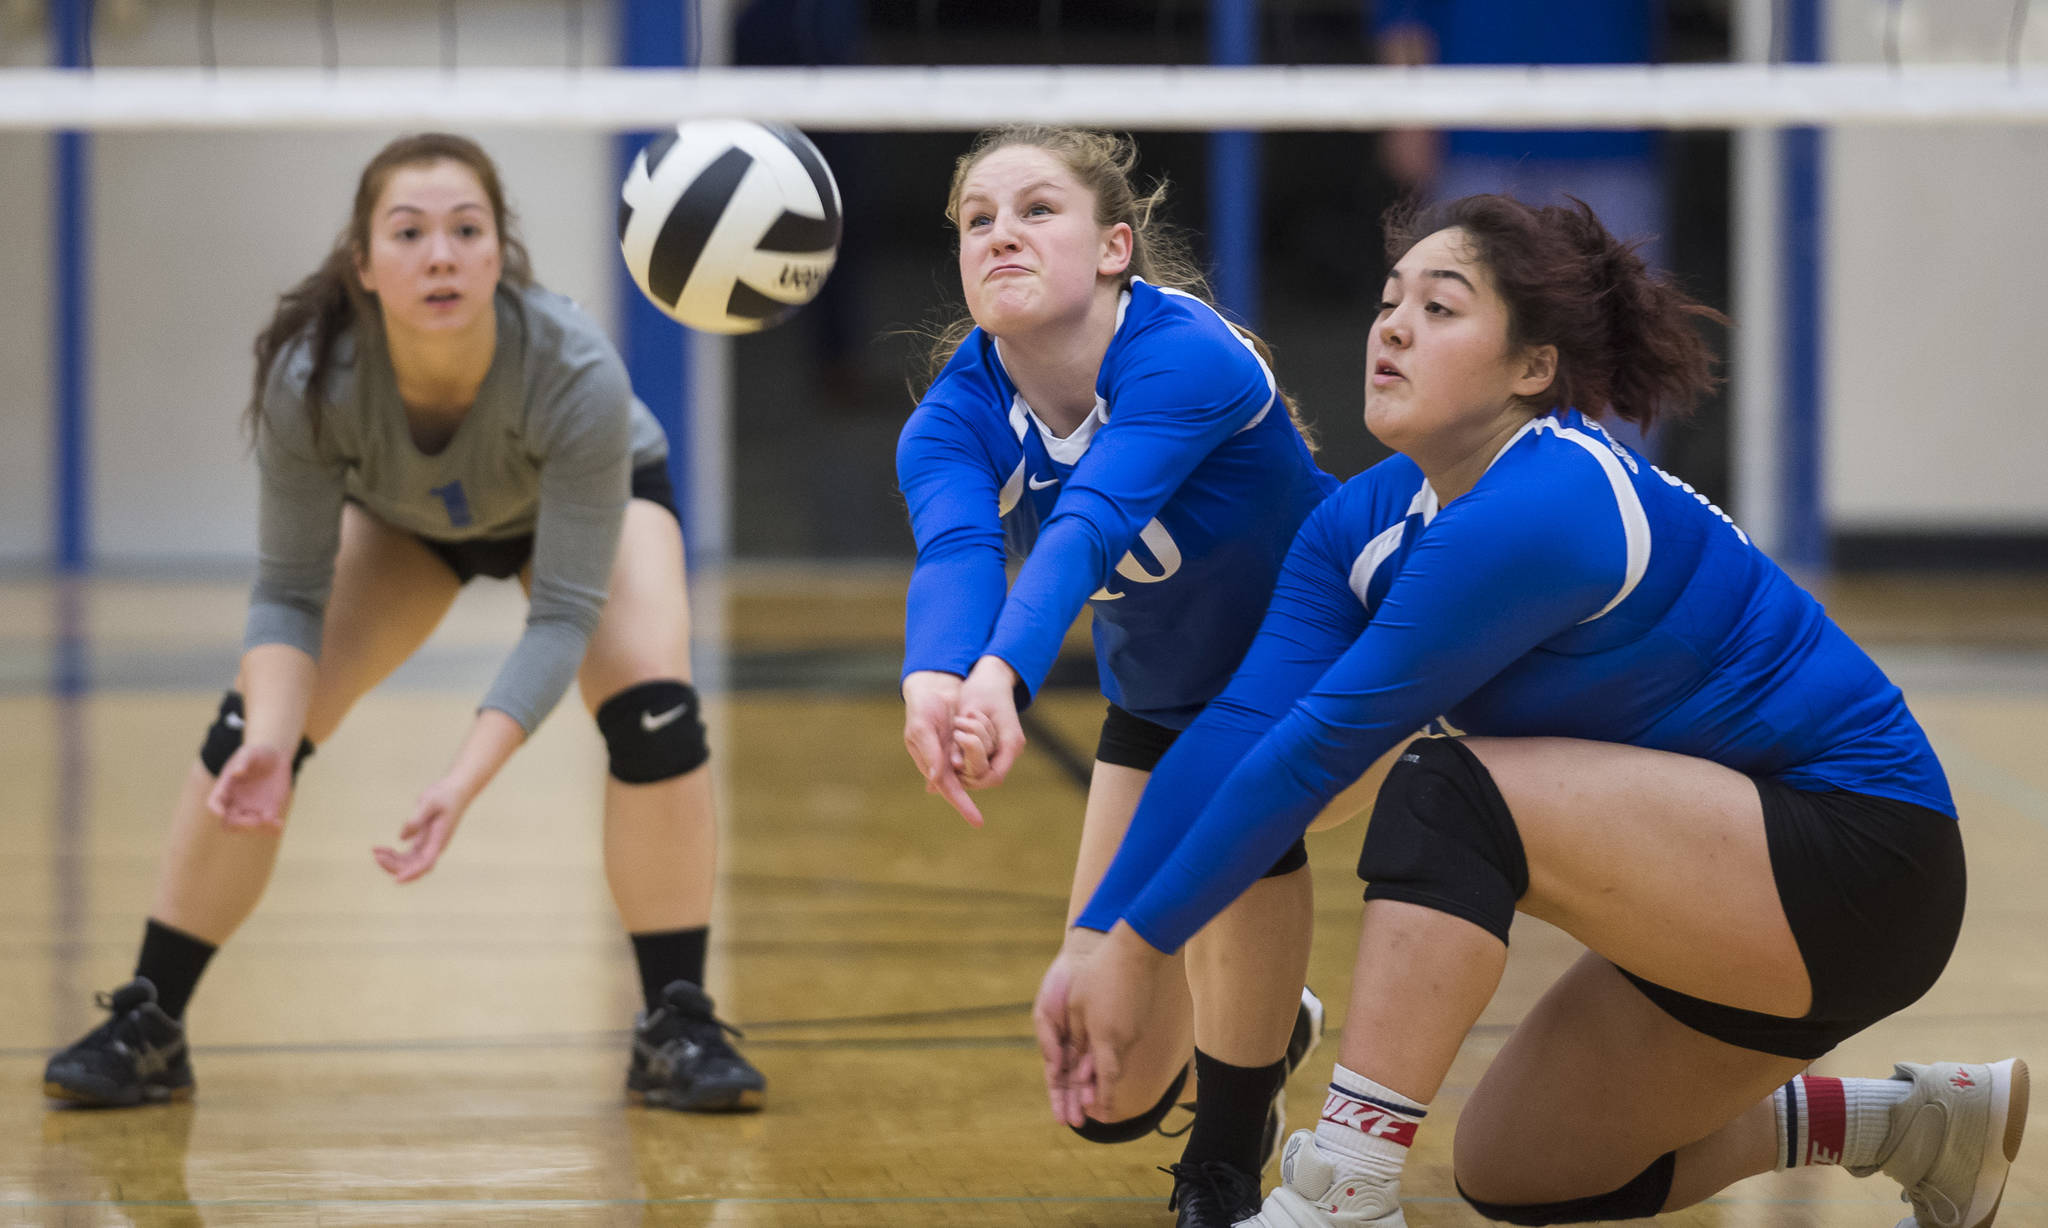 Thunder Mountain's Audrey Welling, center, bumps the ball up against Ketchikan backed up by teammates Tasi Fenumiai, right, and Leilani Eshnaur at TMHS on Friday, Sept. 14, 2018. TMHS won 3-0. (Michael Penn | Juneau Empire)